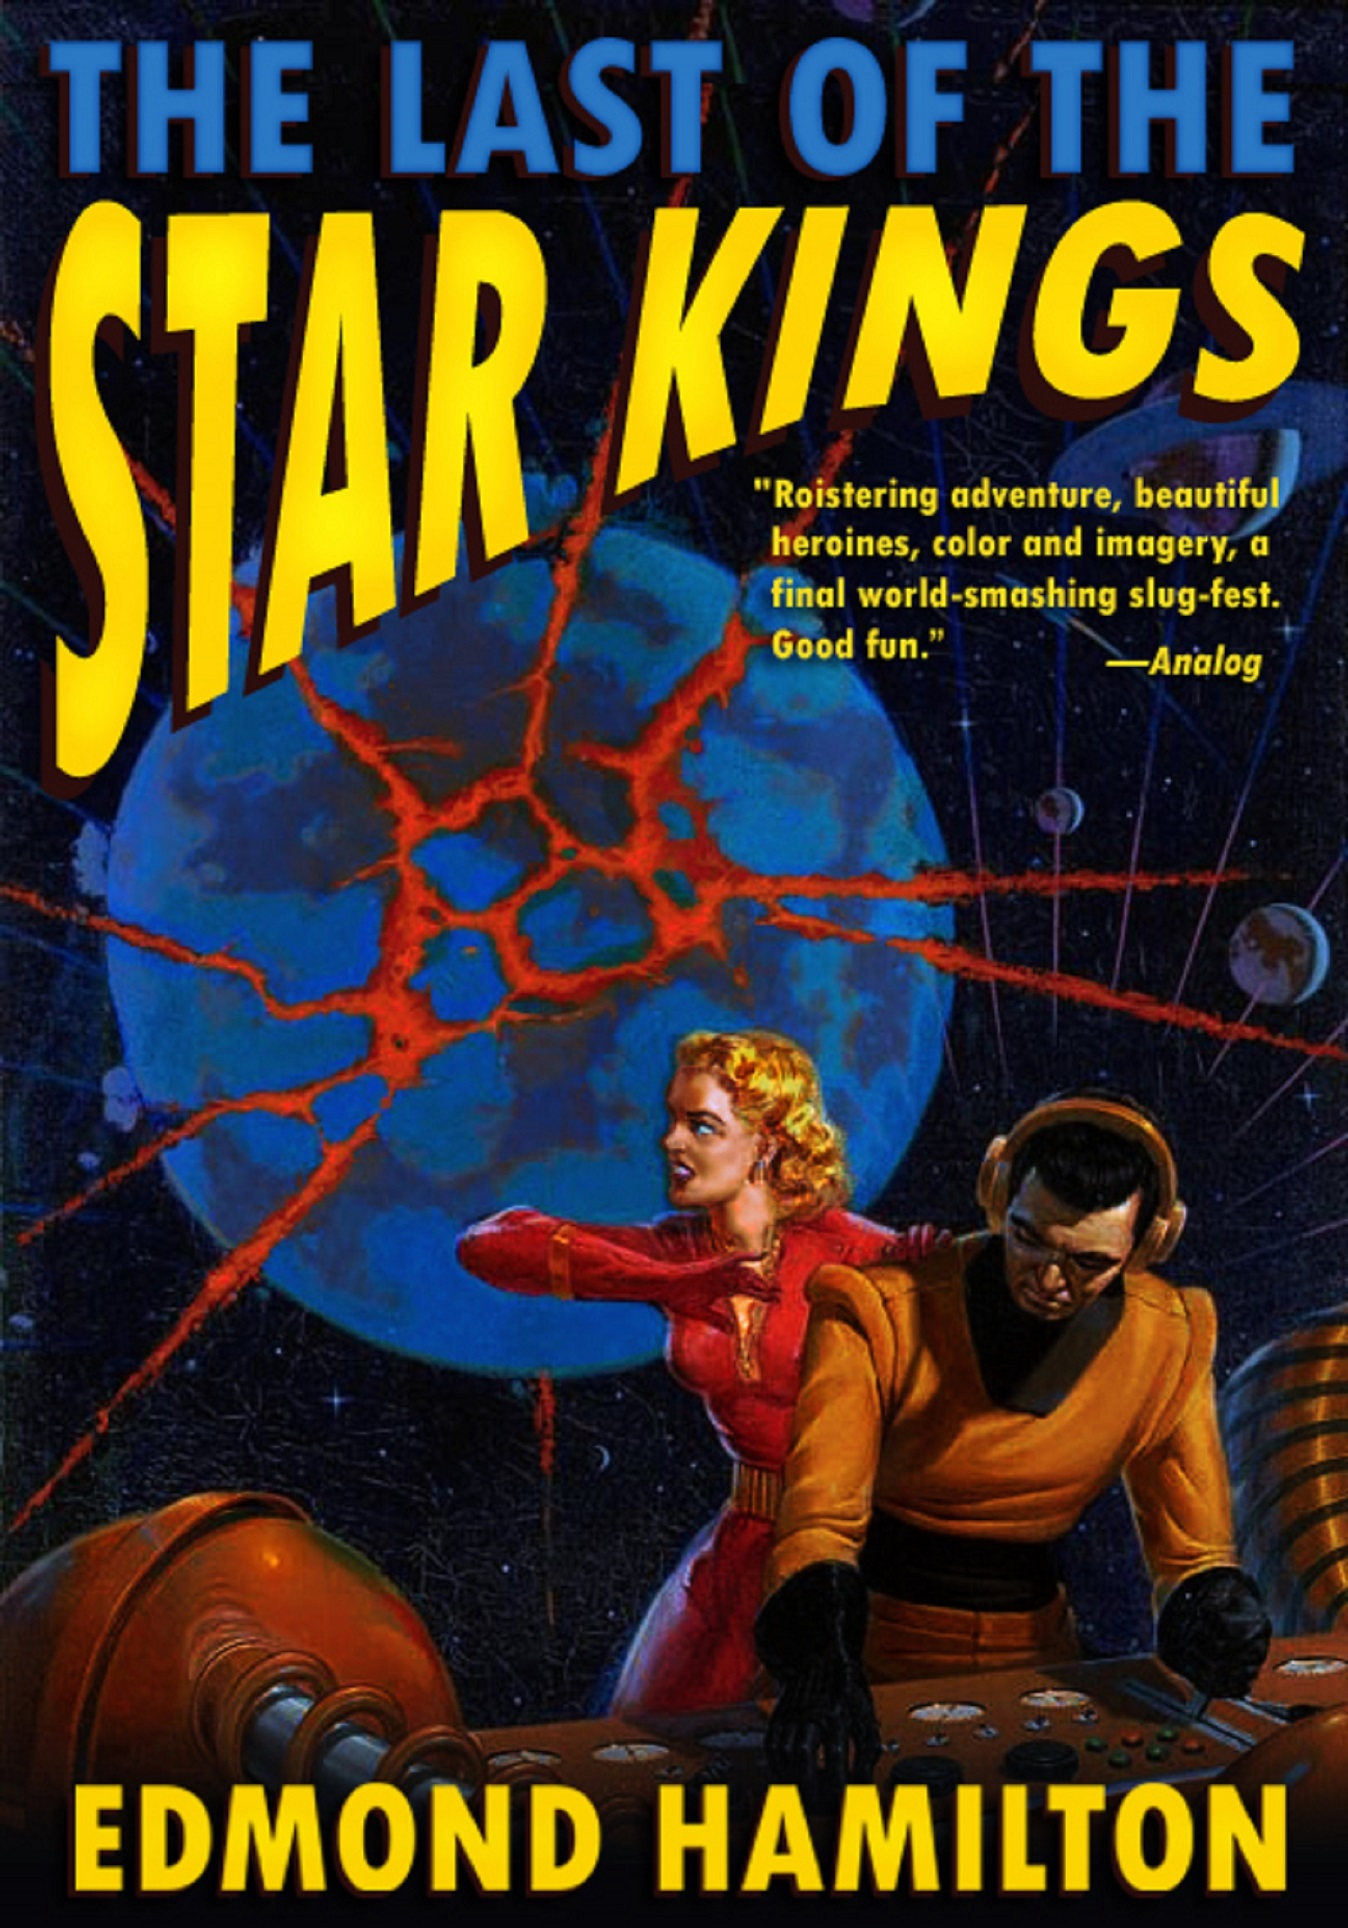 Last of the Star Kings2 - Copy